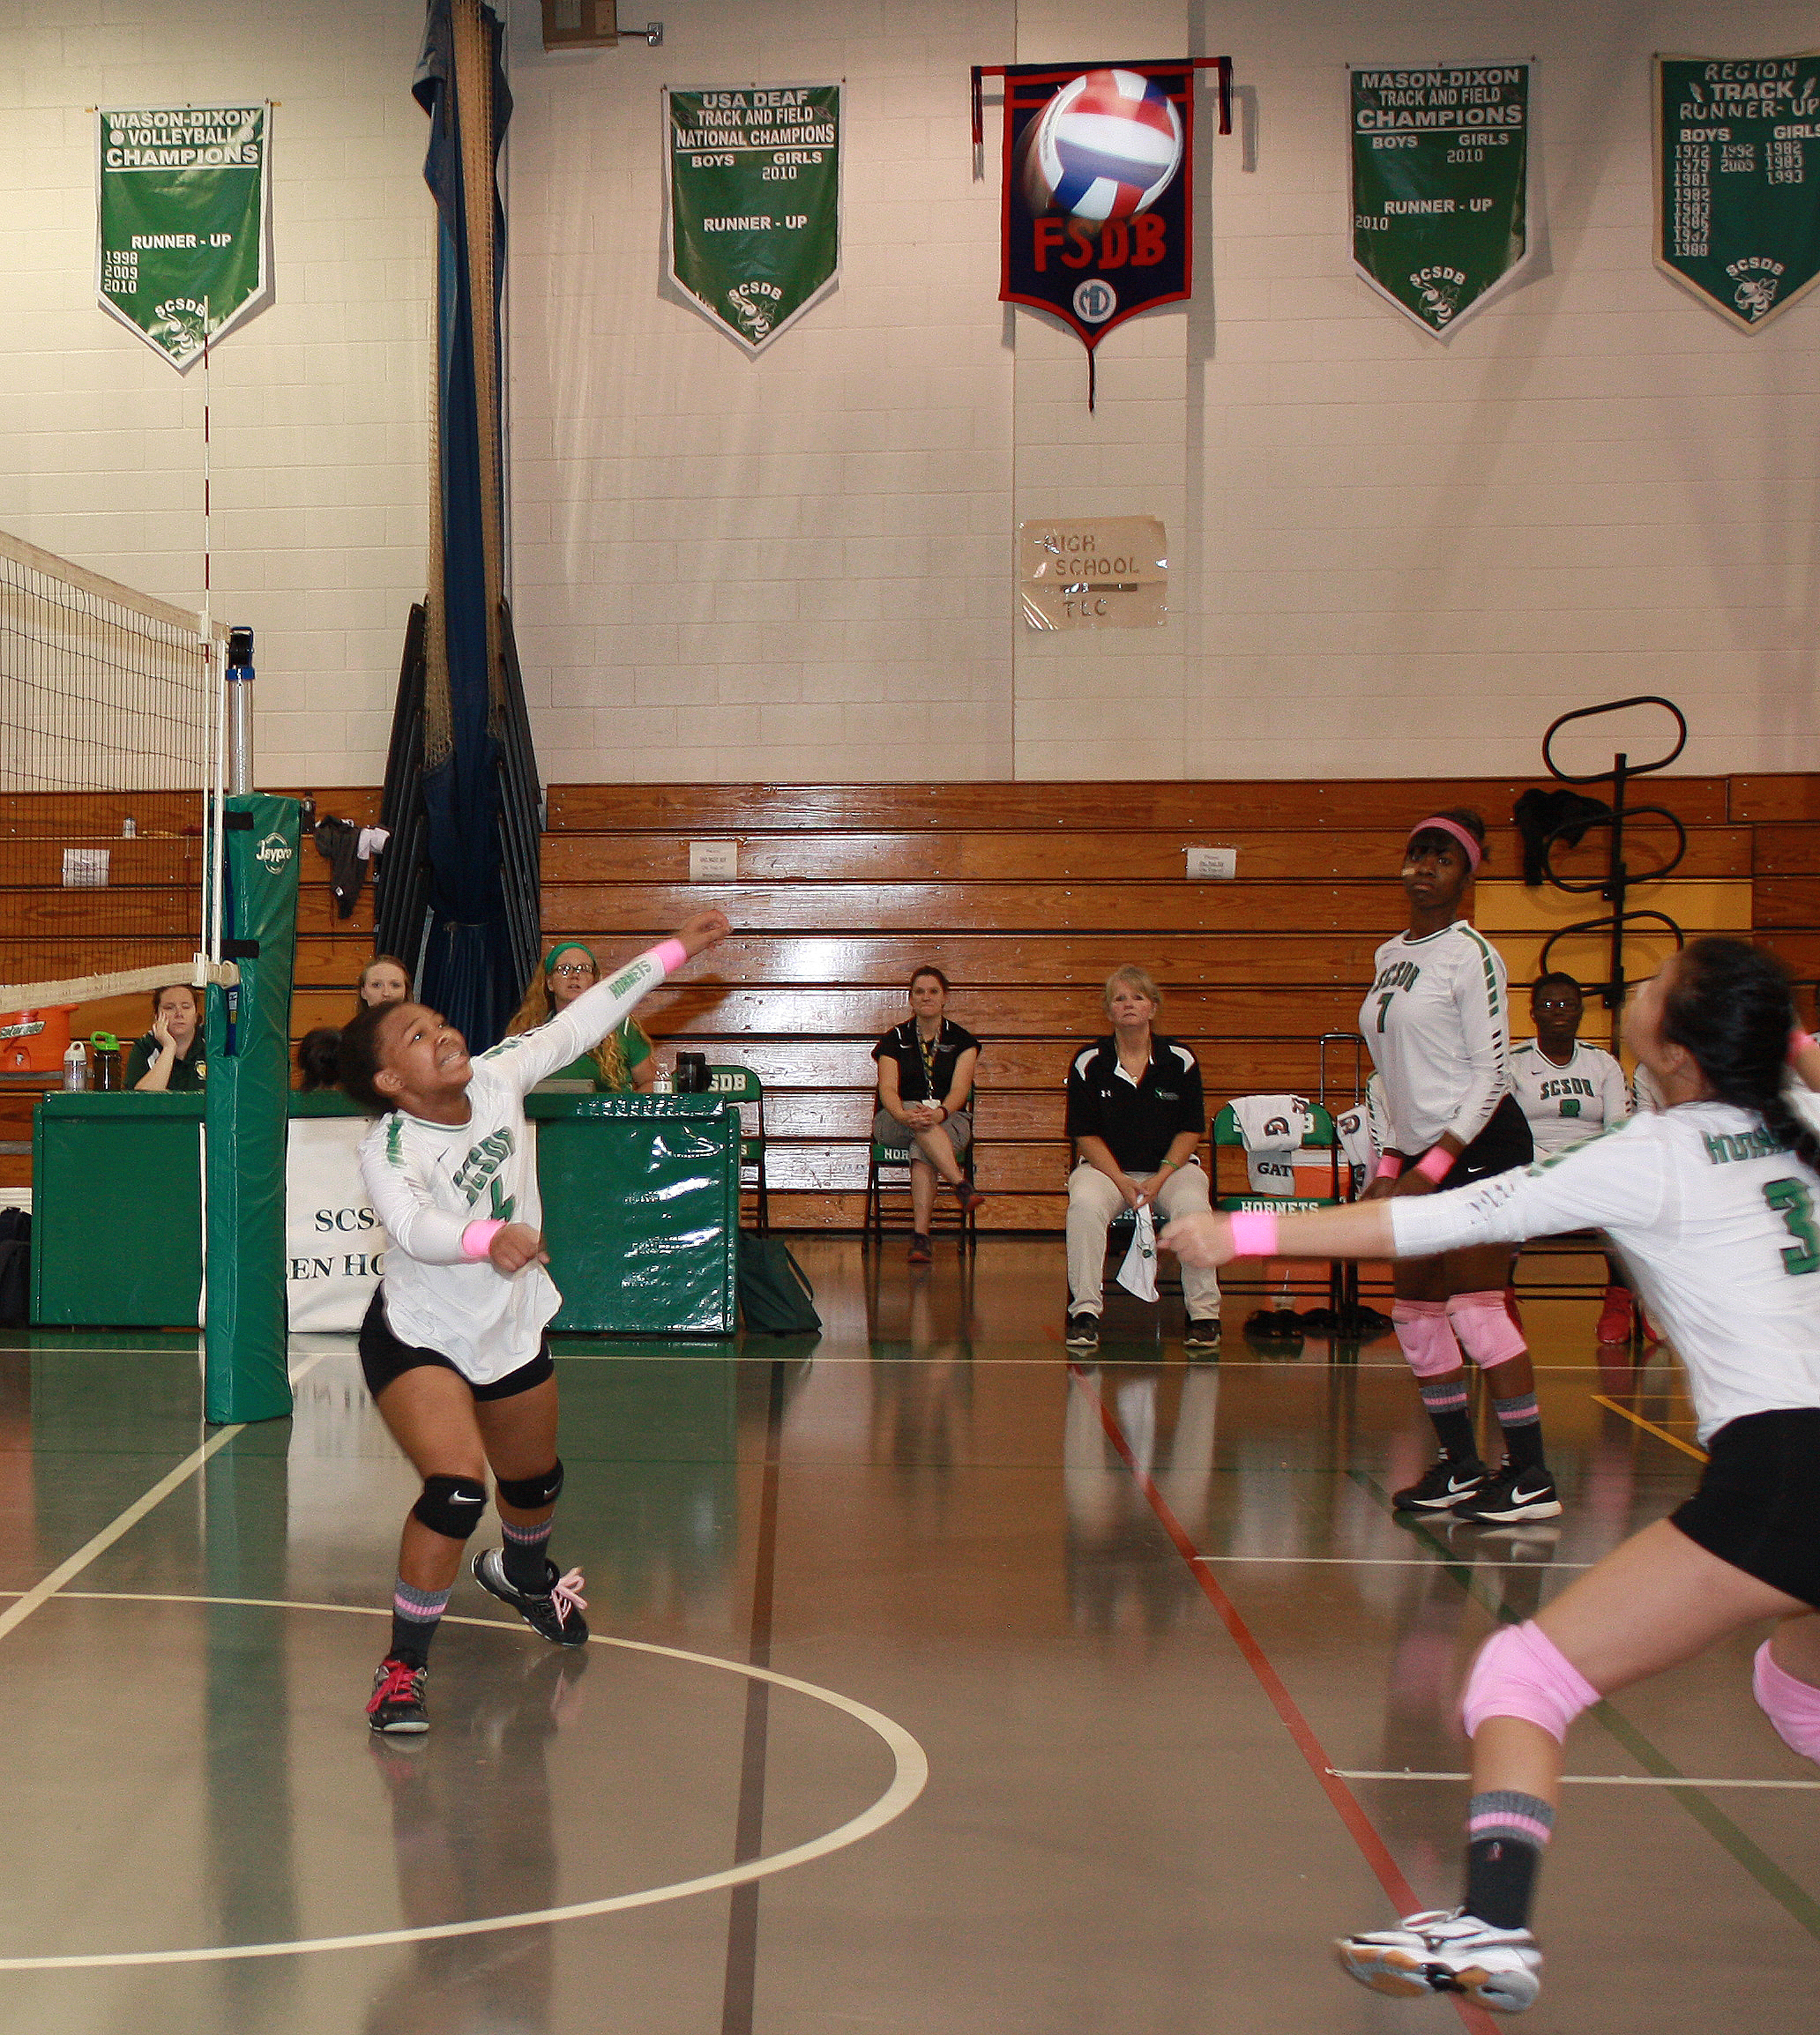 The girls volleyball team keeps their eyes on the ball ready to return it to the visiting team.